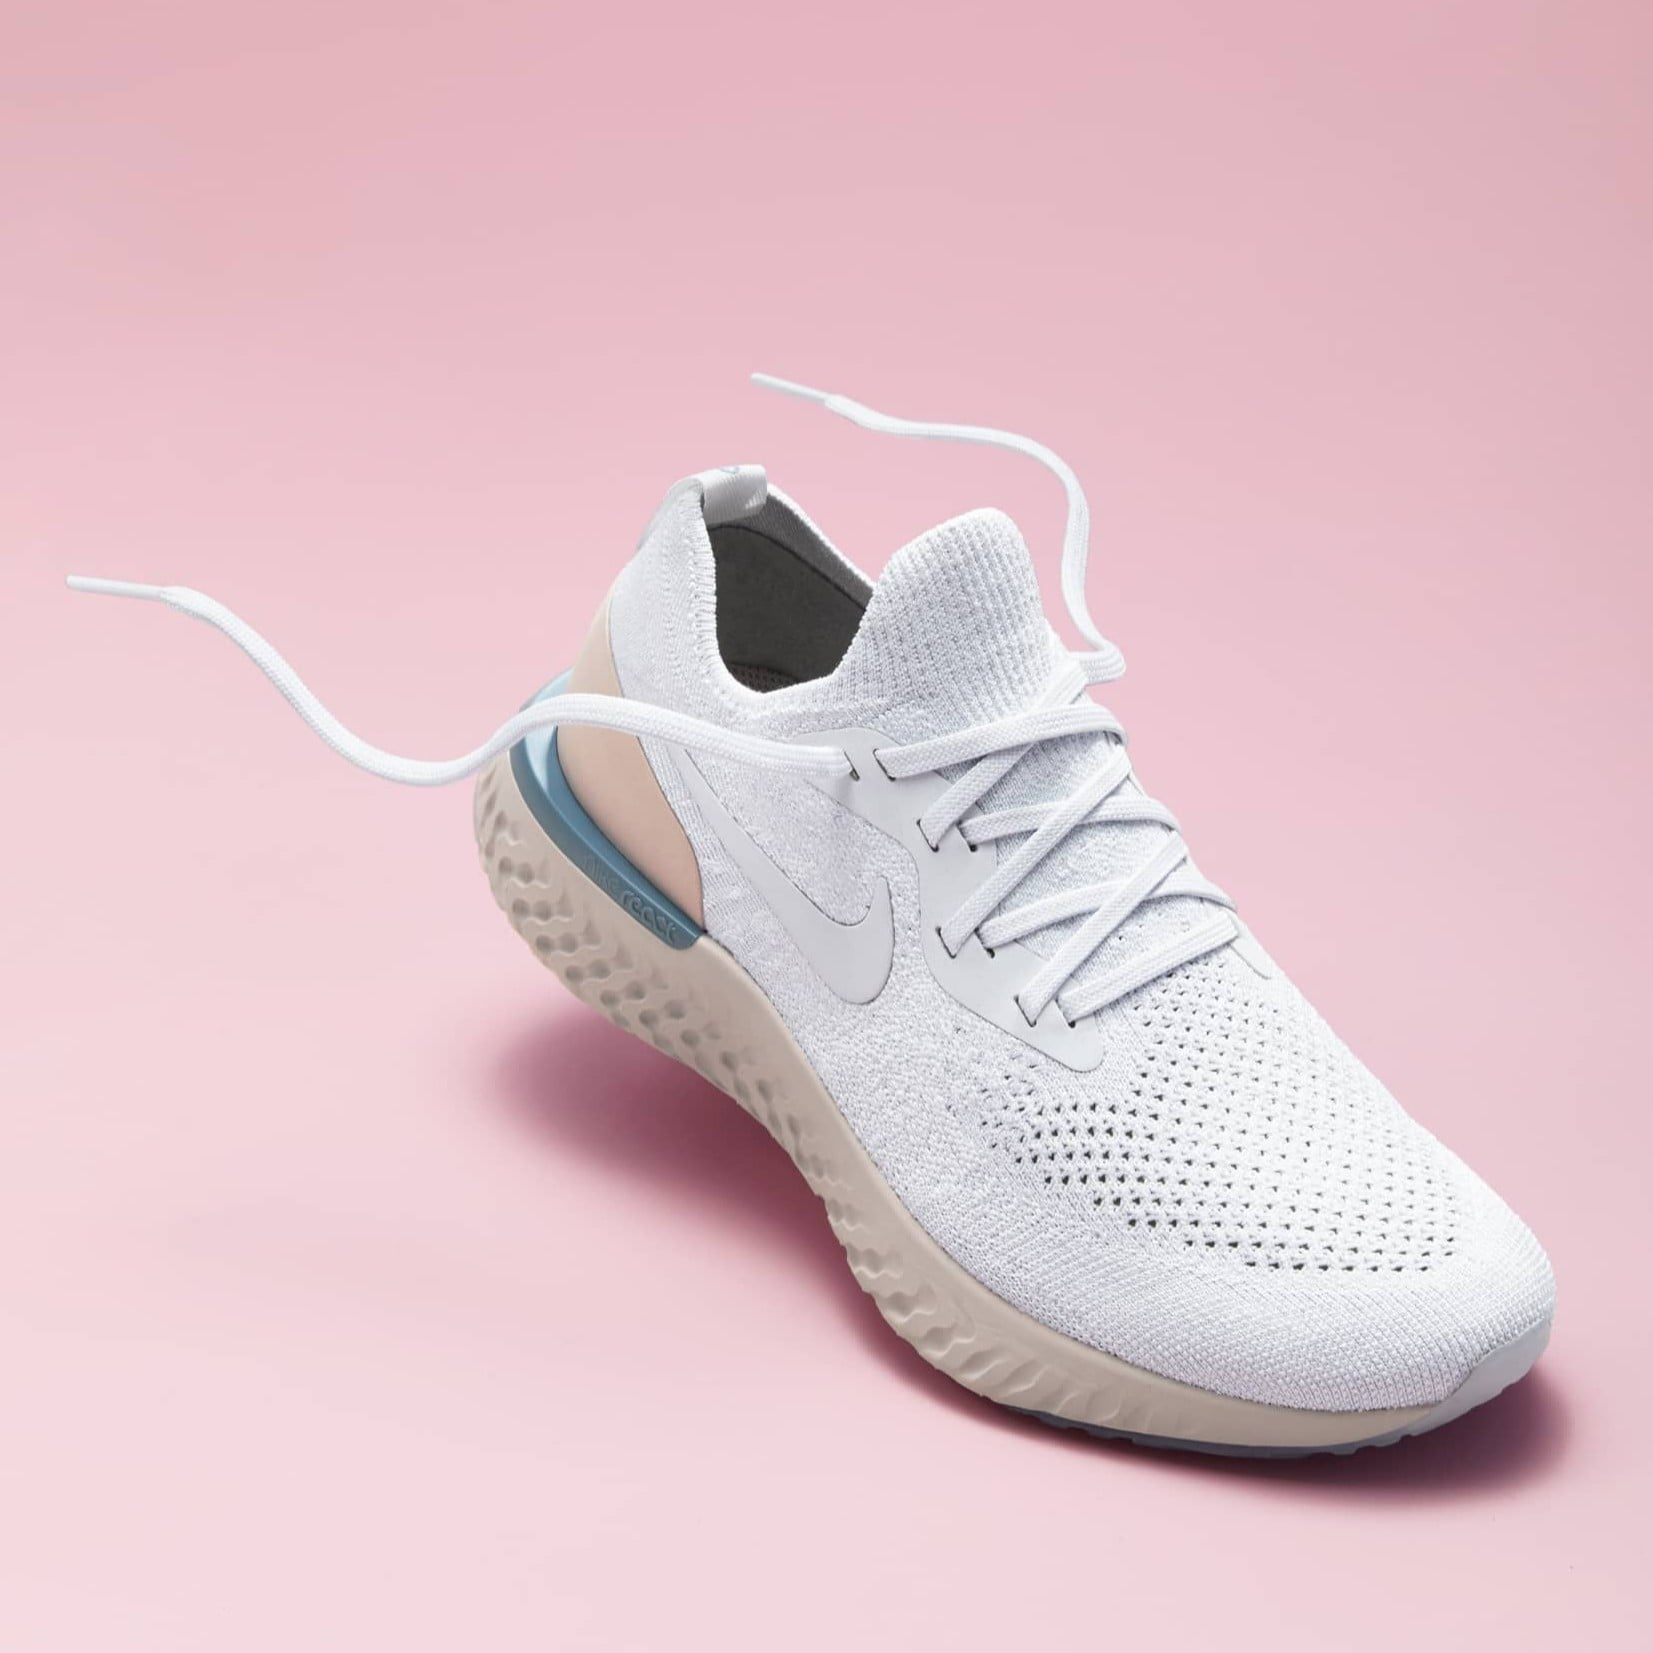 9eef73dfcd7d Best Running Shoes For Women From Nordstrom